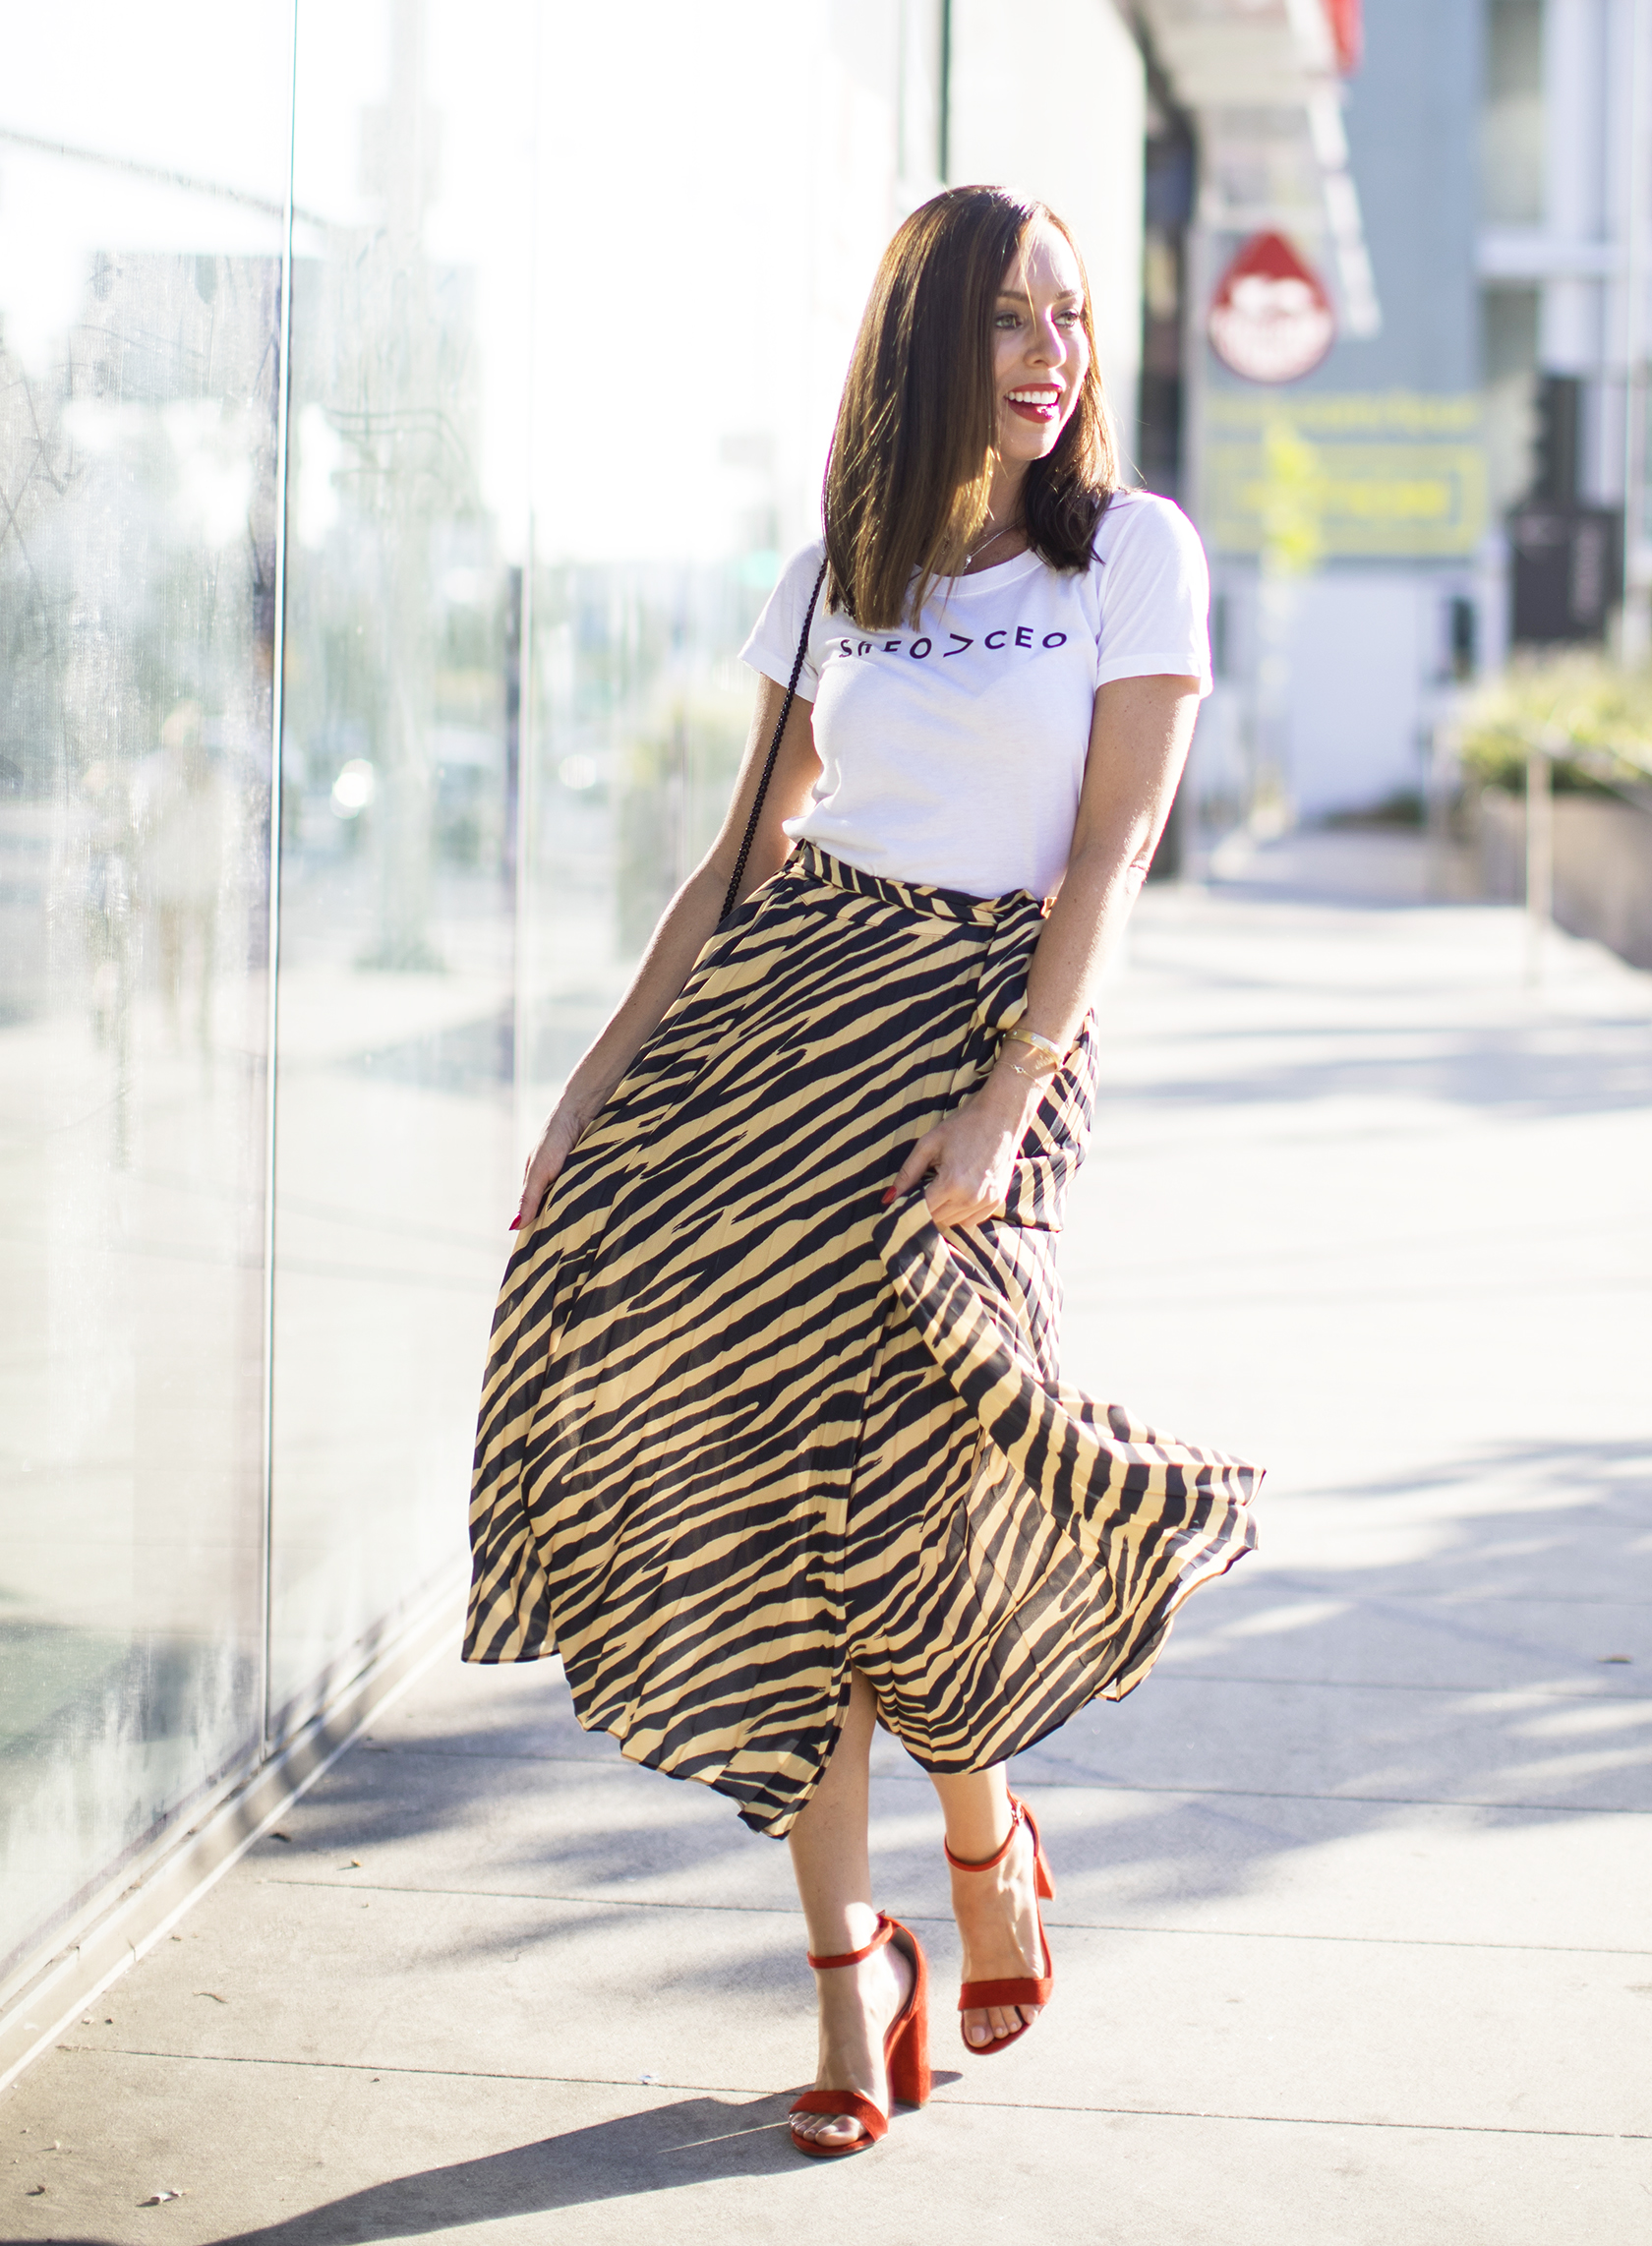 Sydne Style shows how to wear graphic tees with zebra print skirt